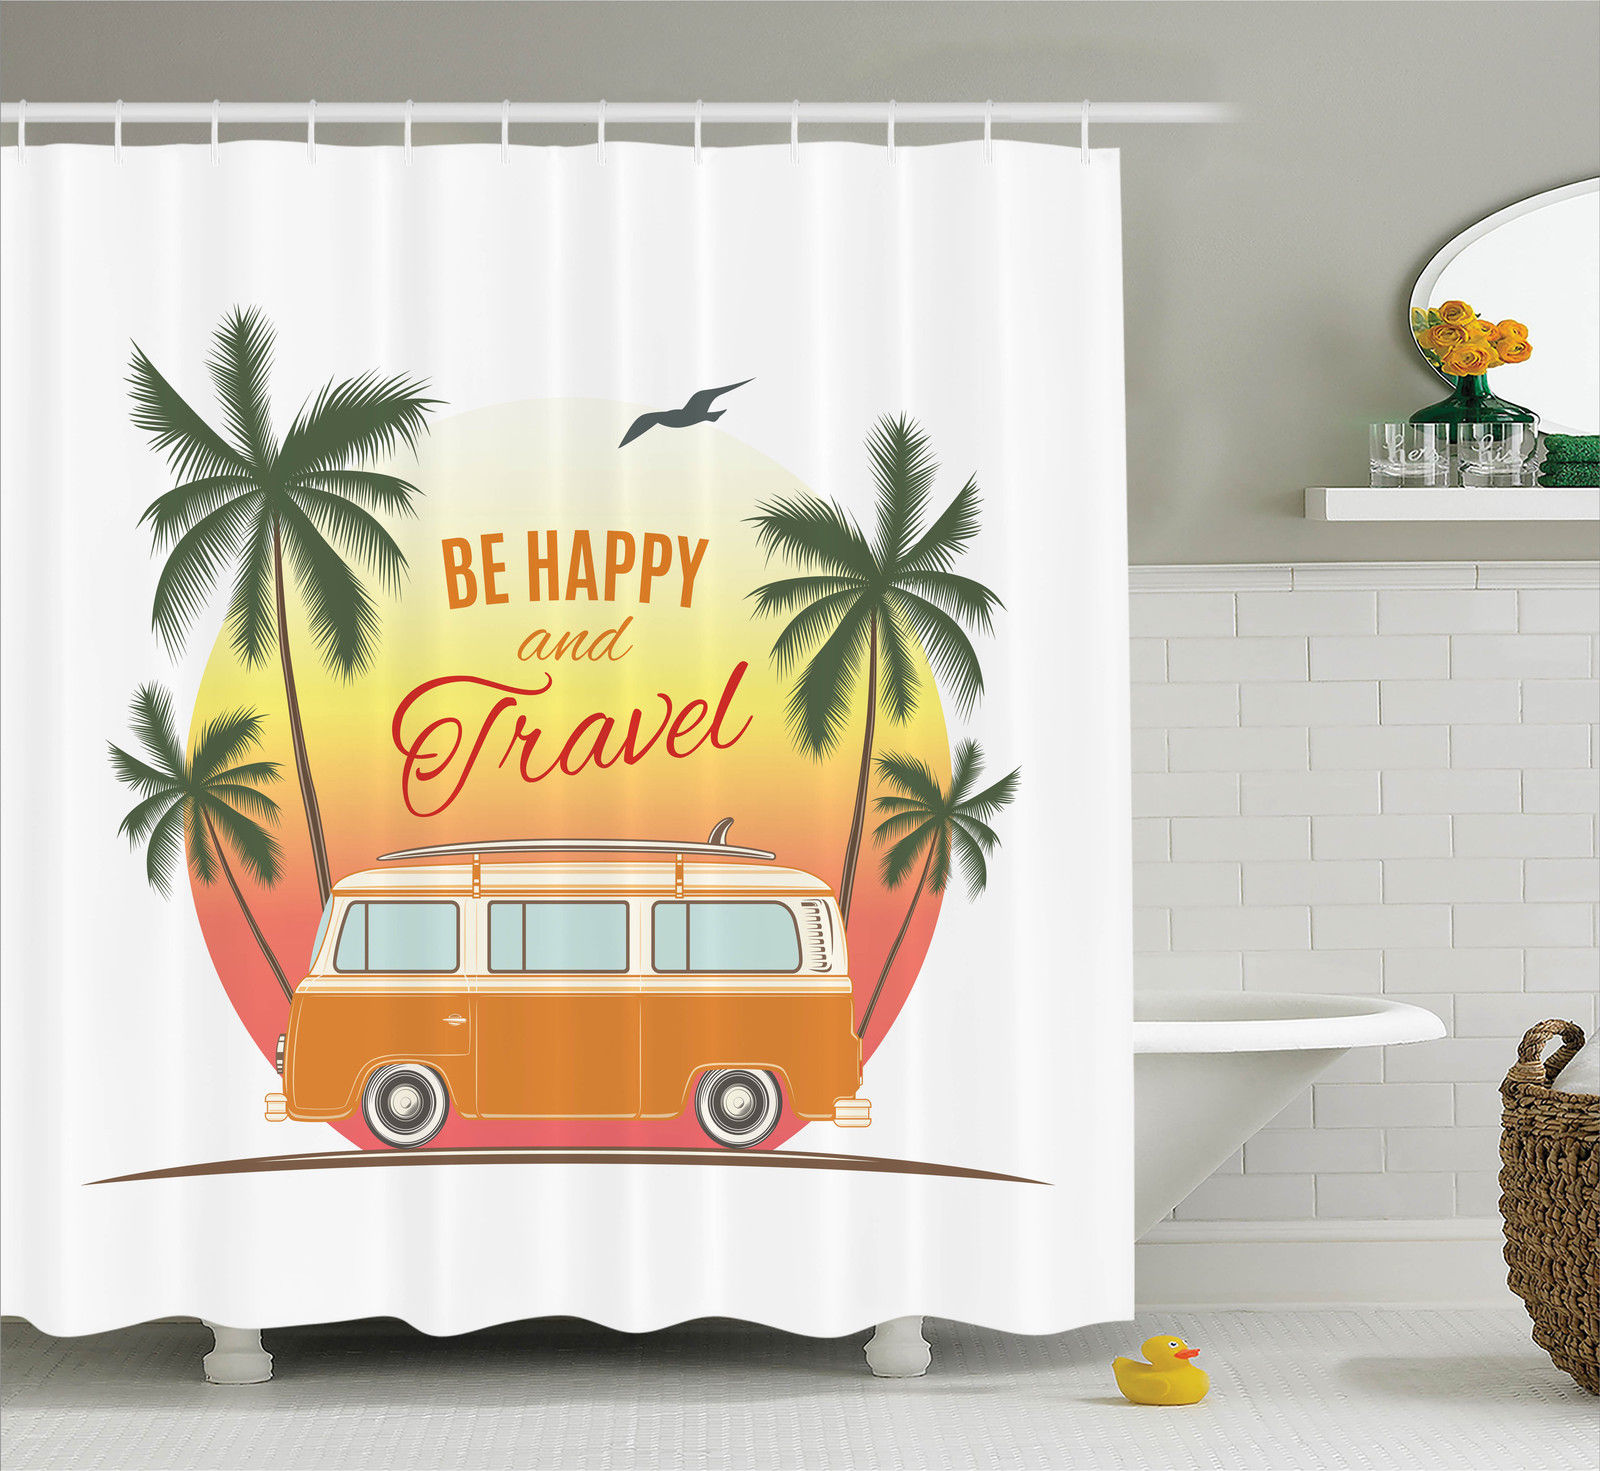 Surf Decor  Retro Surf Van With Palms Camping Relax Hippie Travel Be Happy Free Sixties Theme, Bathroom Accessories, 69W X 84L Inches Extra Long, By Ambesonne